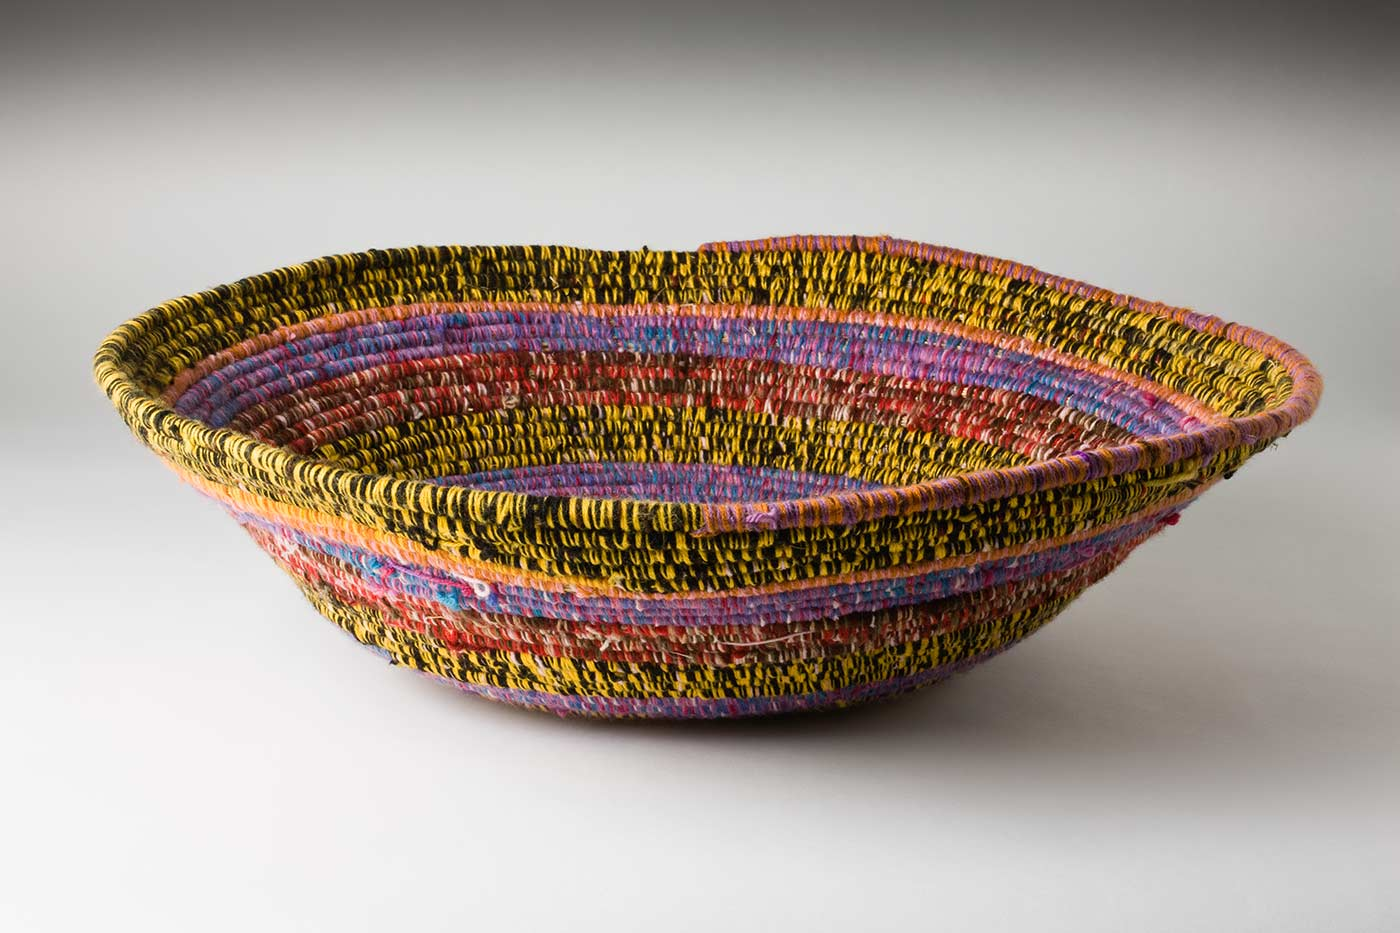 An oval coiled multicoloured yarn and plant fibre basket. The plant fibre in the centre of the basket is covered by yellow yarn, followed by horizontal alternate yarn coverings over the fibre. The yarn colours are purple, yellow, brown-white-pink, purple-yellow, pink-blue, red-brown-pink, purple-pink-blue, black-yellow, orange-pink. The top plant fibre is covered by half yellow-black and orange-purple yarn. - click to view larger image